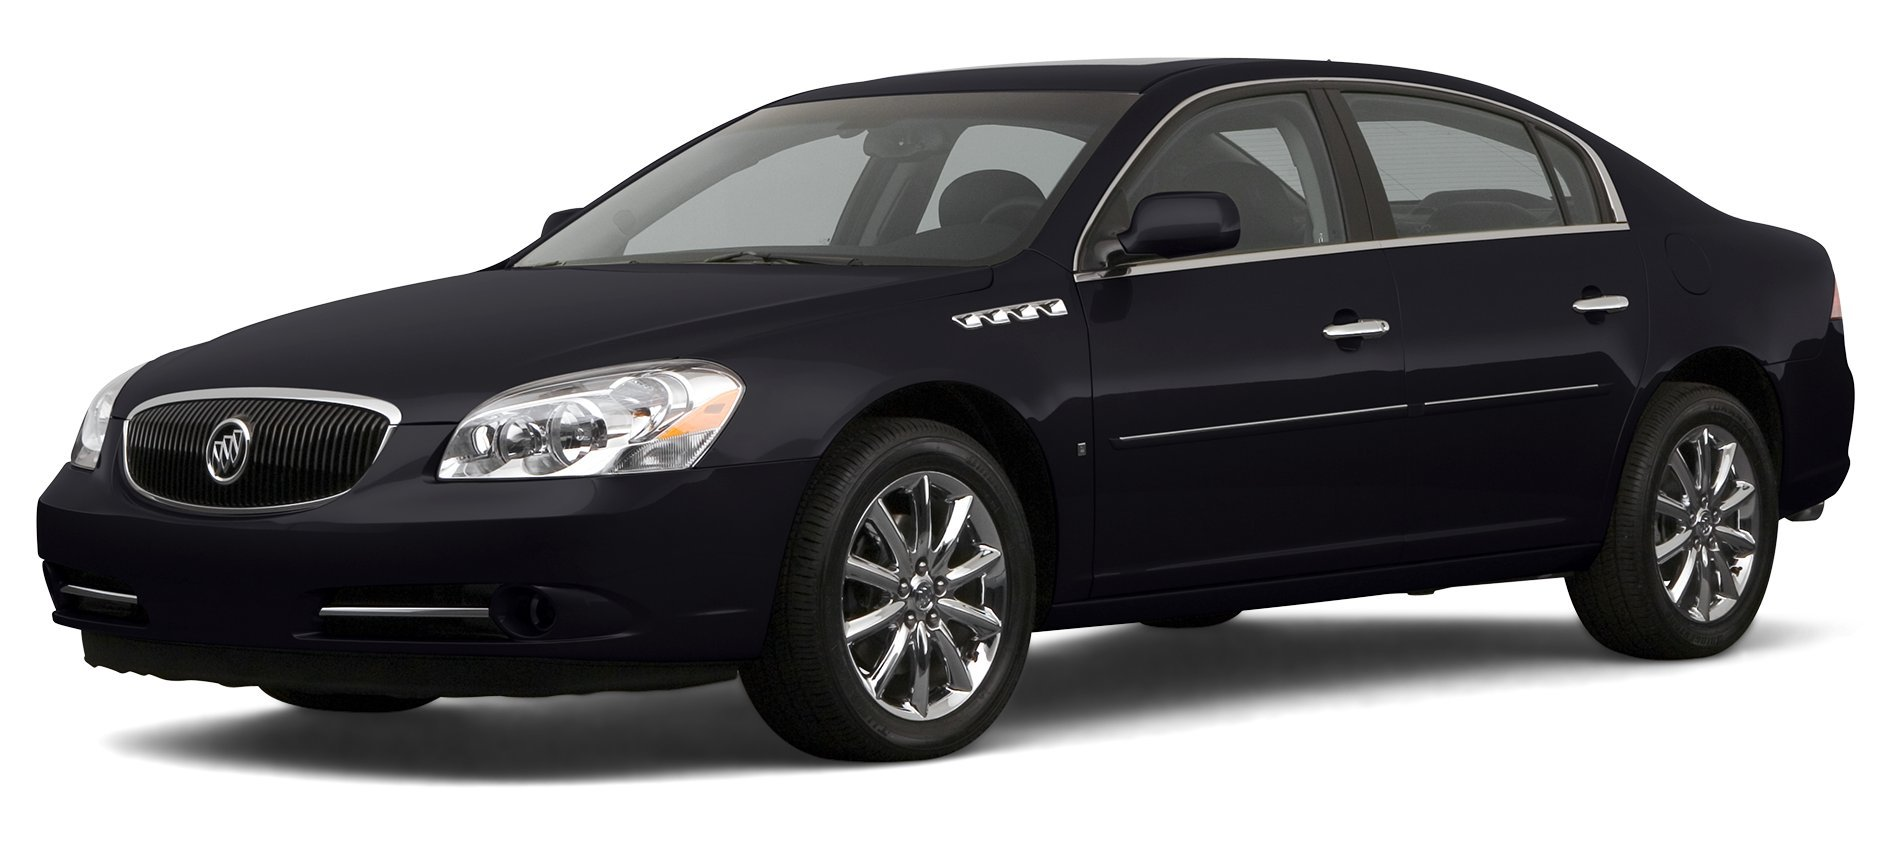 2007 buick lucerne reviews images and specs. Black Bedroom Furniture Sets. Home Design Ideas